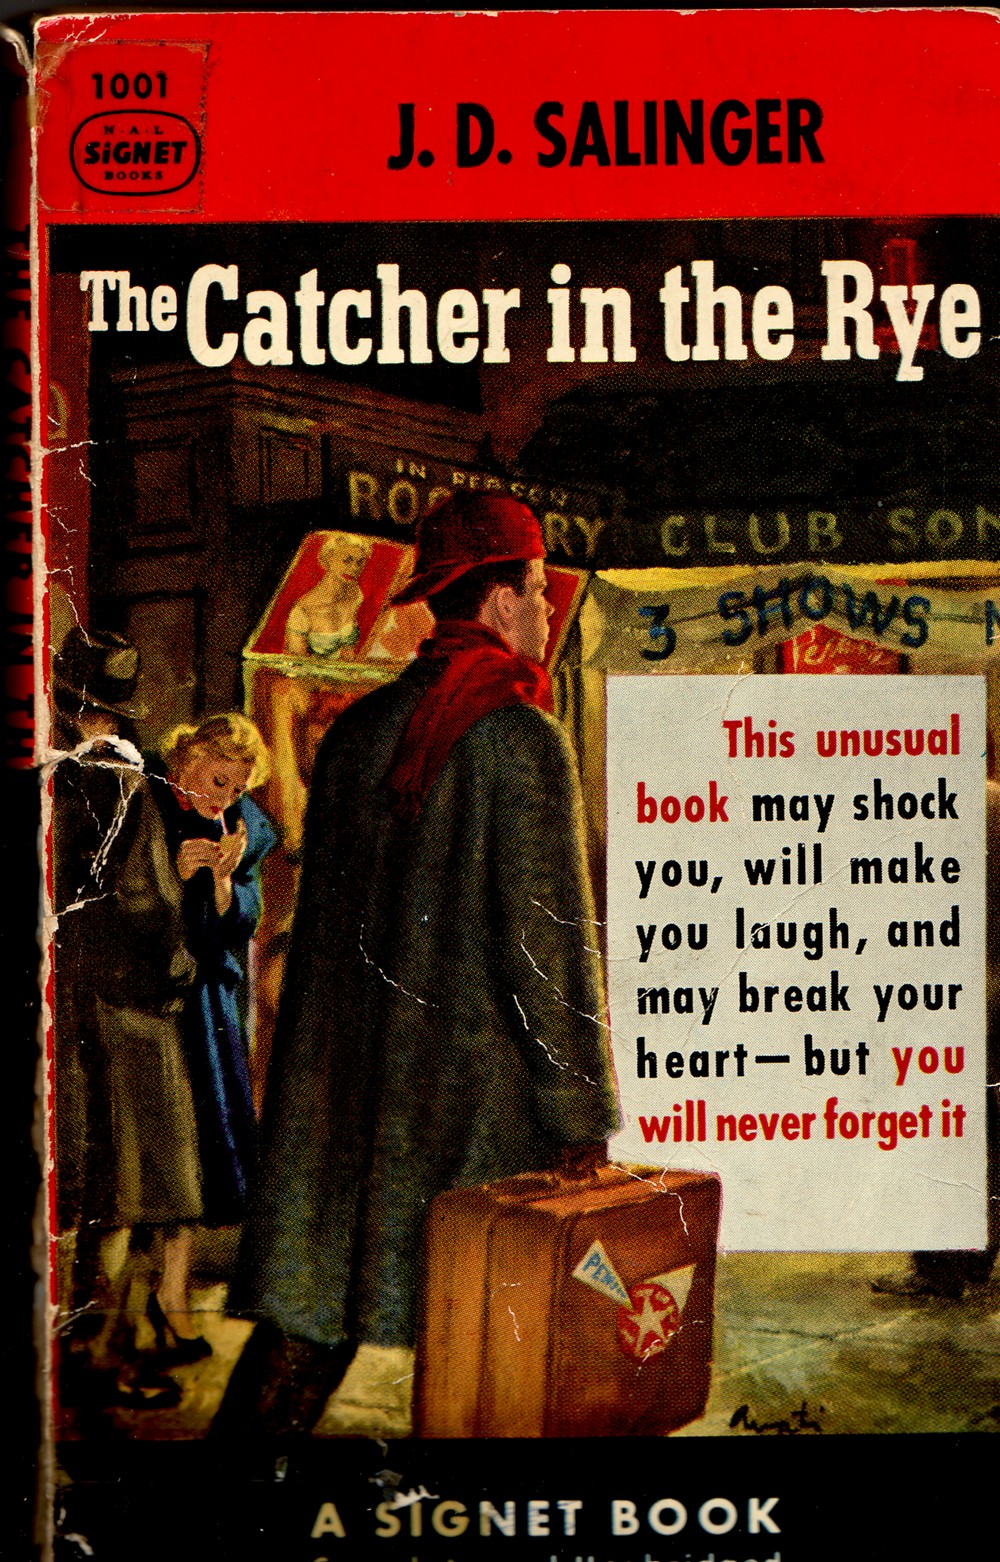 an analysis of the sexuality in the catcher in the rye a novel by j d salinger